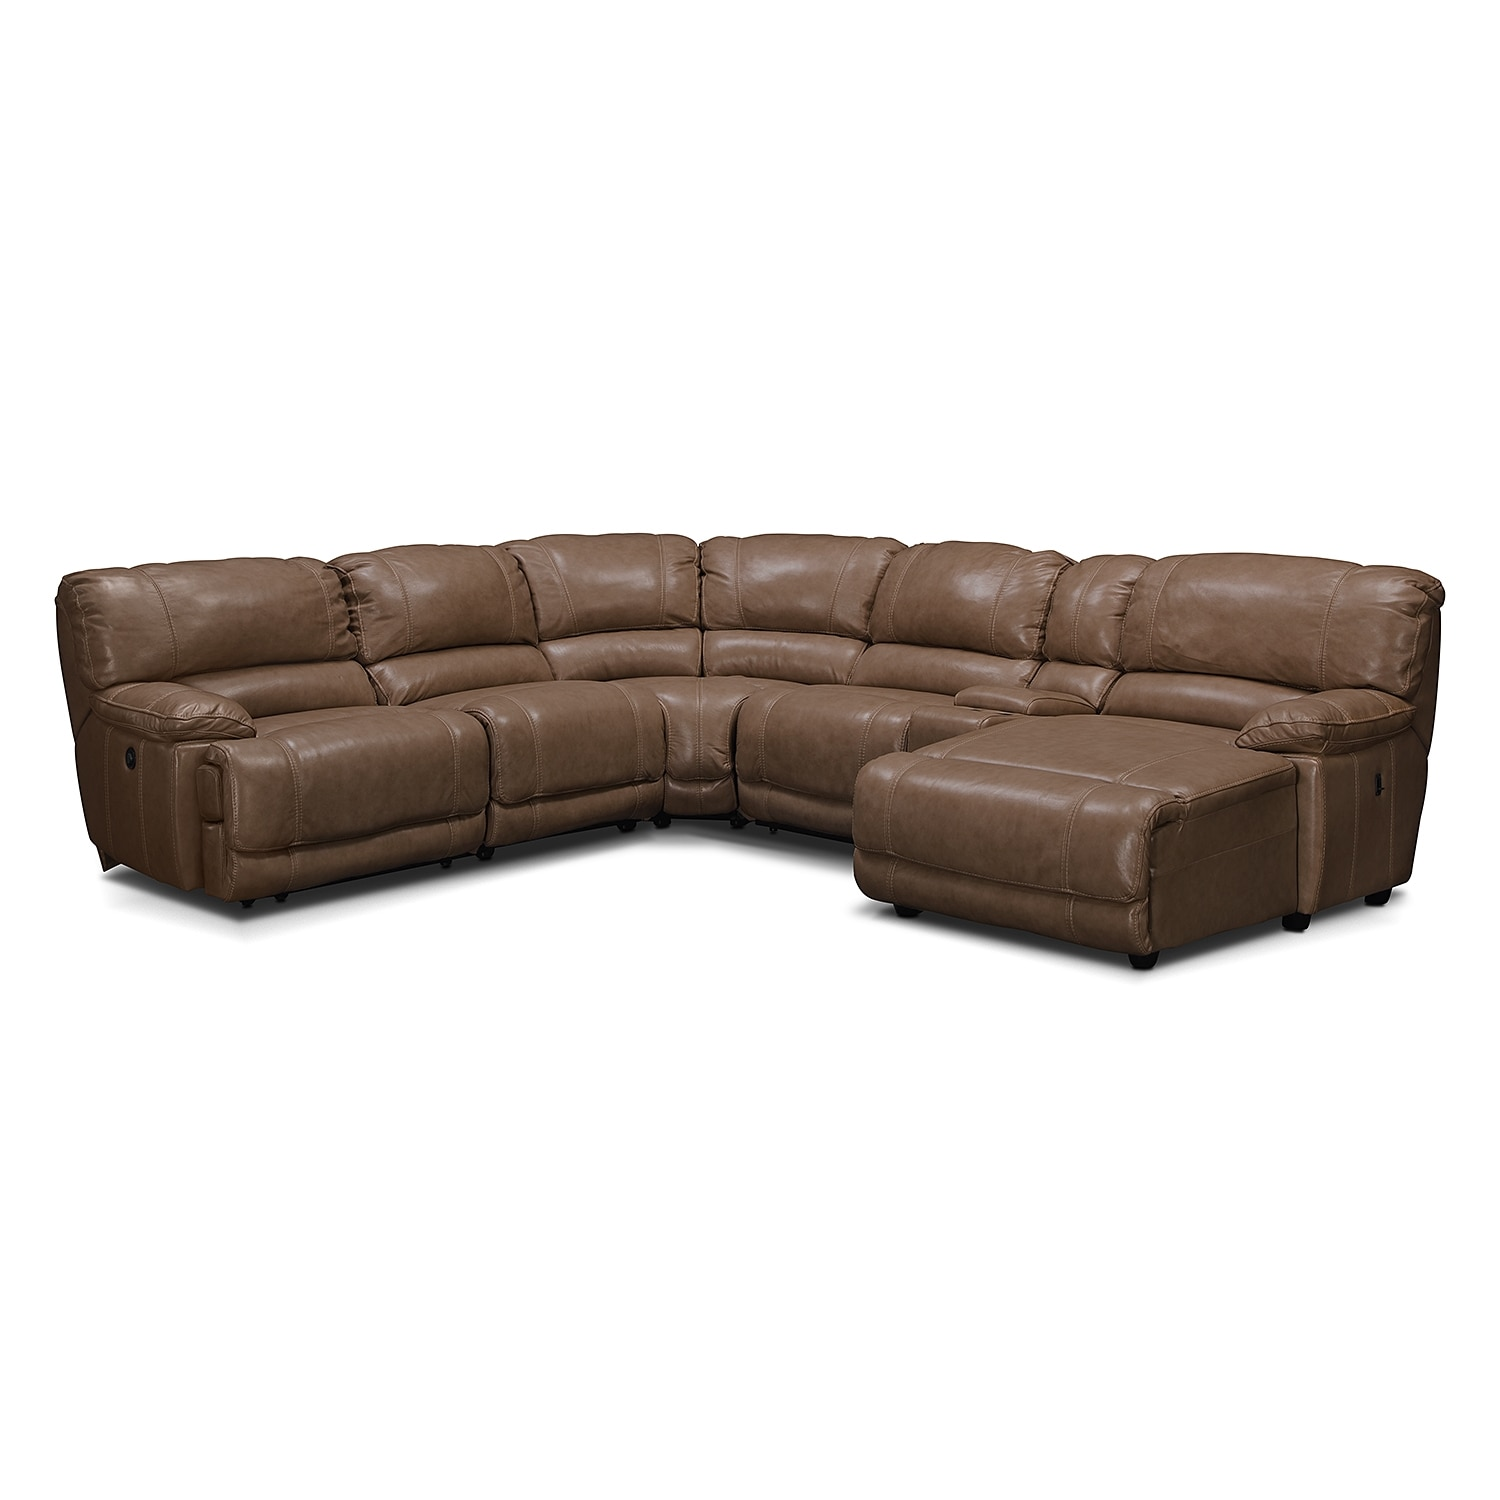 Living Room Furniture - St. Malo 6-Piece Power Reclining Sectional with Right-Facing Chaise - Taupe